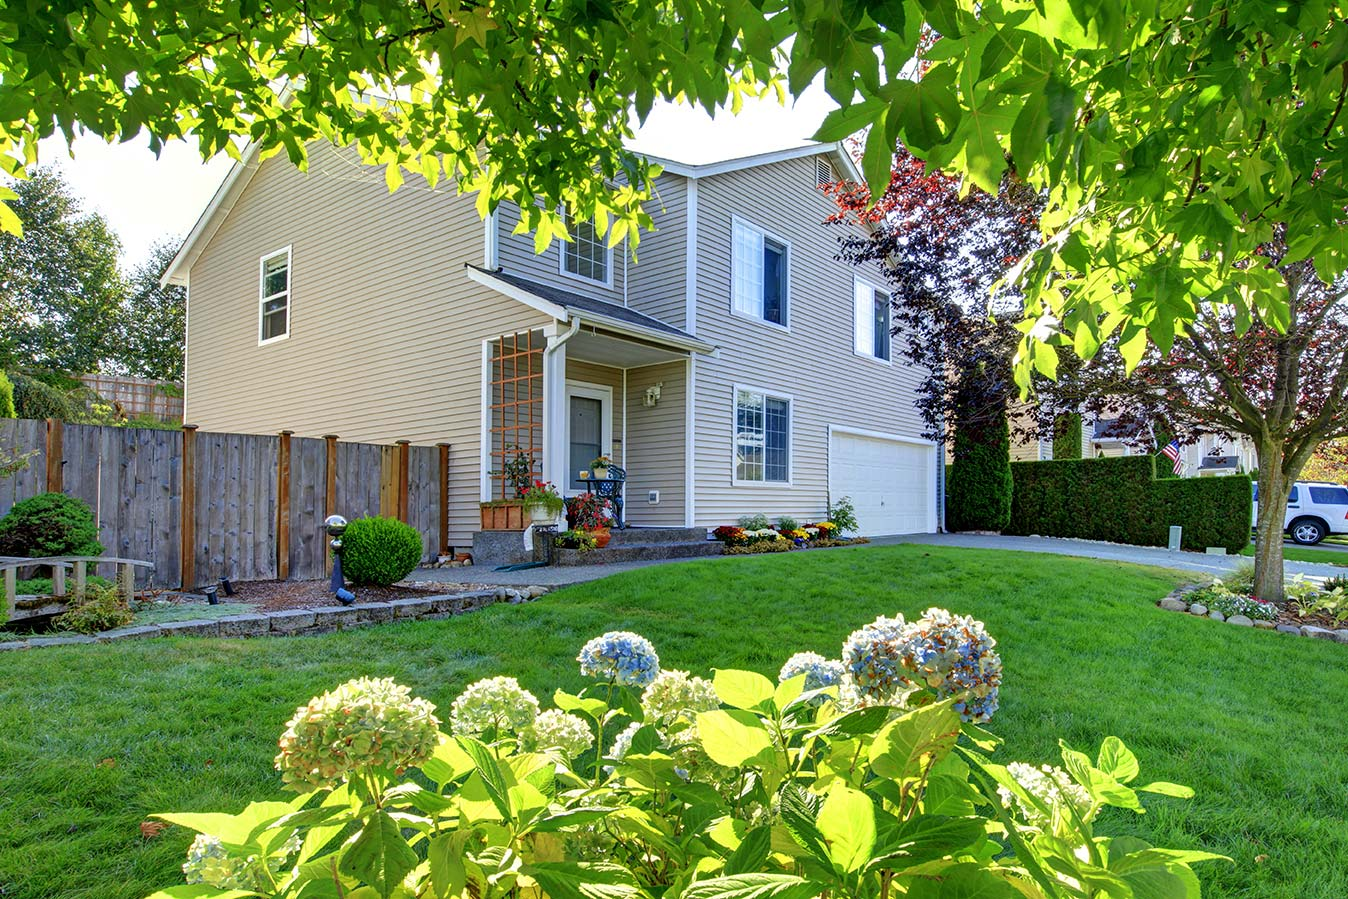 Nw family house with beautiful landscaping seen while preforming home inspection services